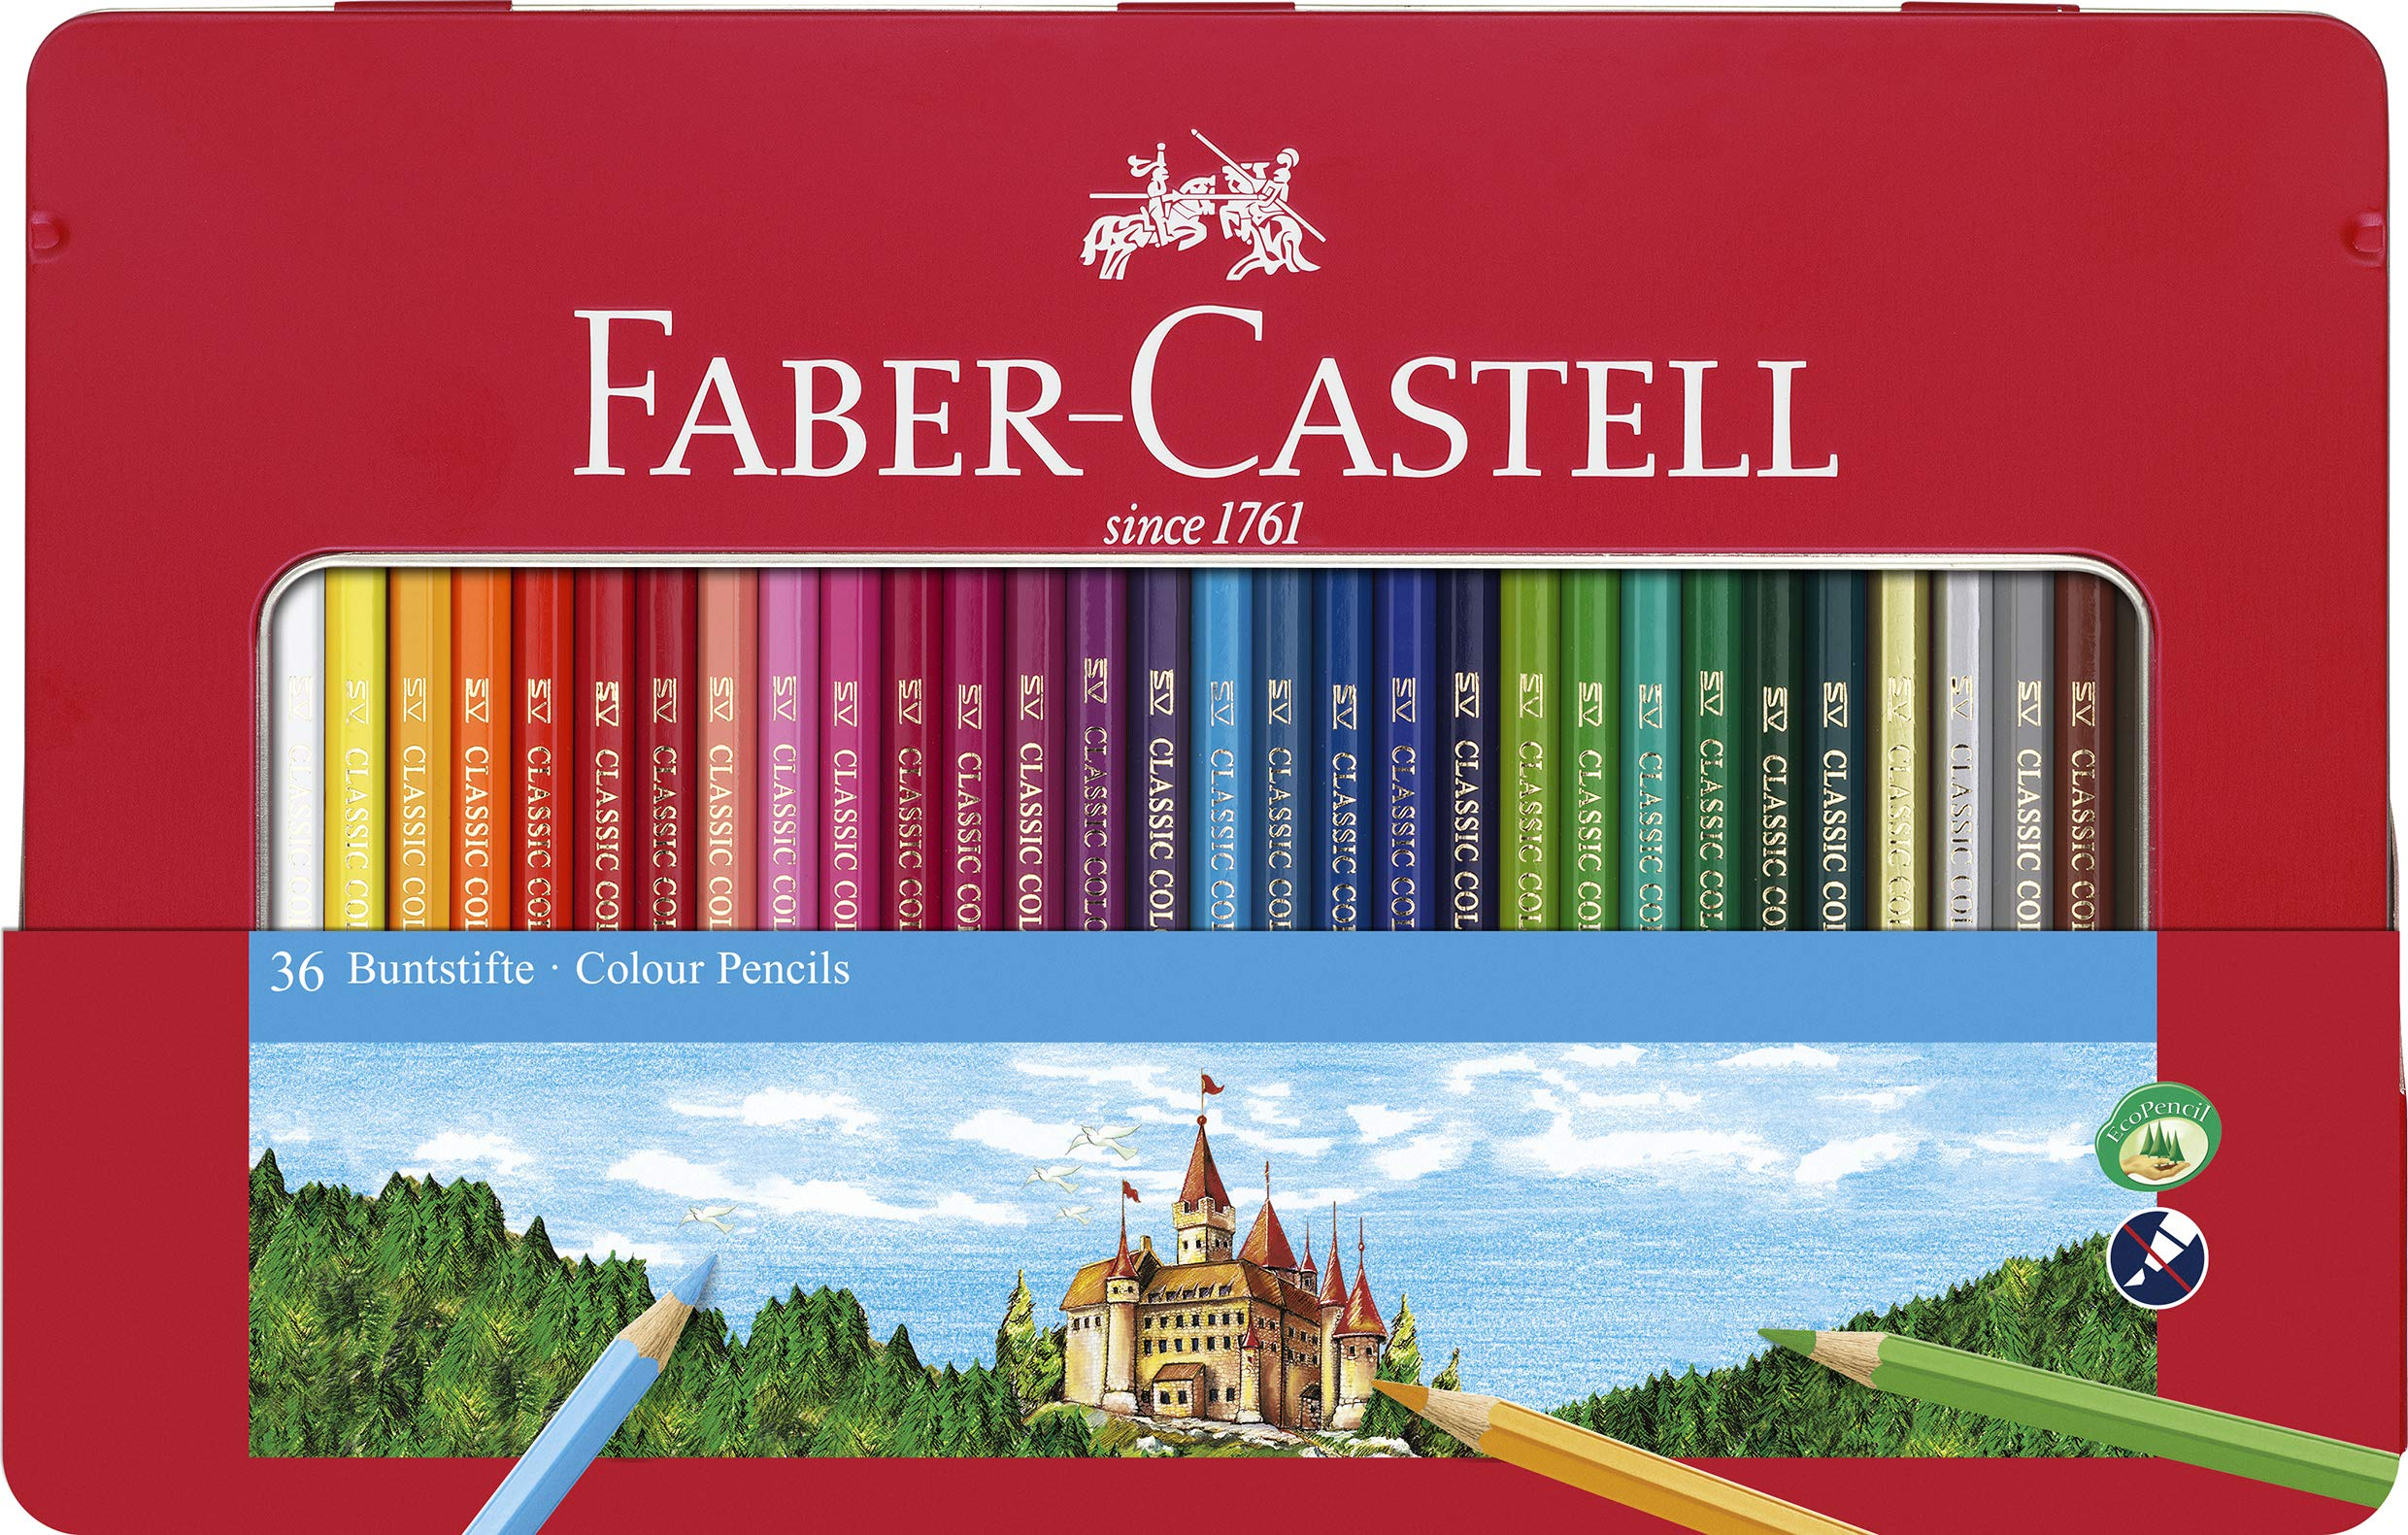 Faber-Castell Classic Colored Pencils Tin Set, 48 Vibrant Colors in Sturdy Metal Case by Faber-Castell